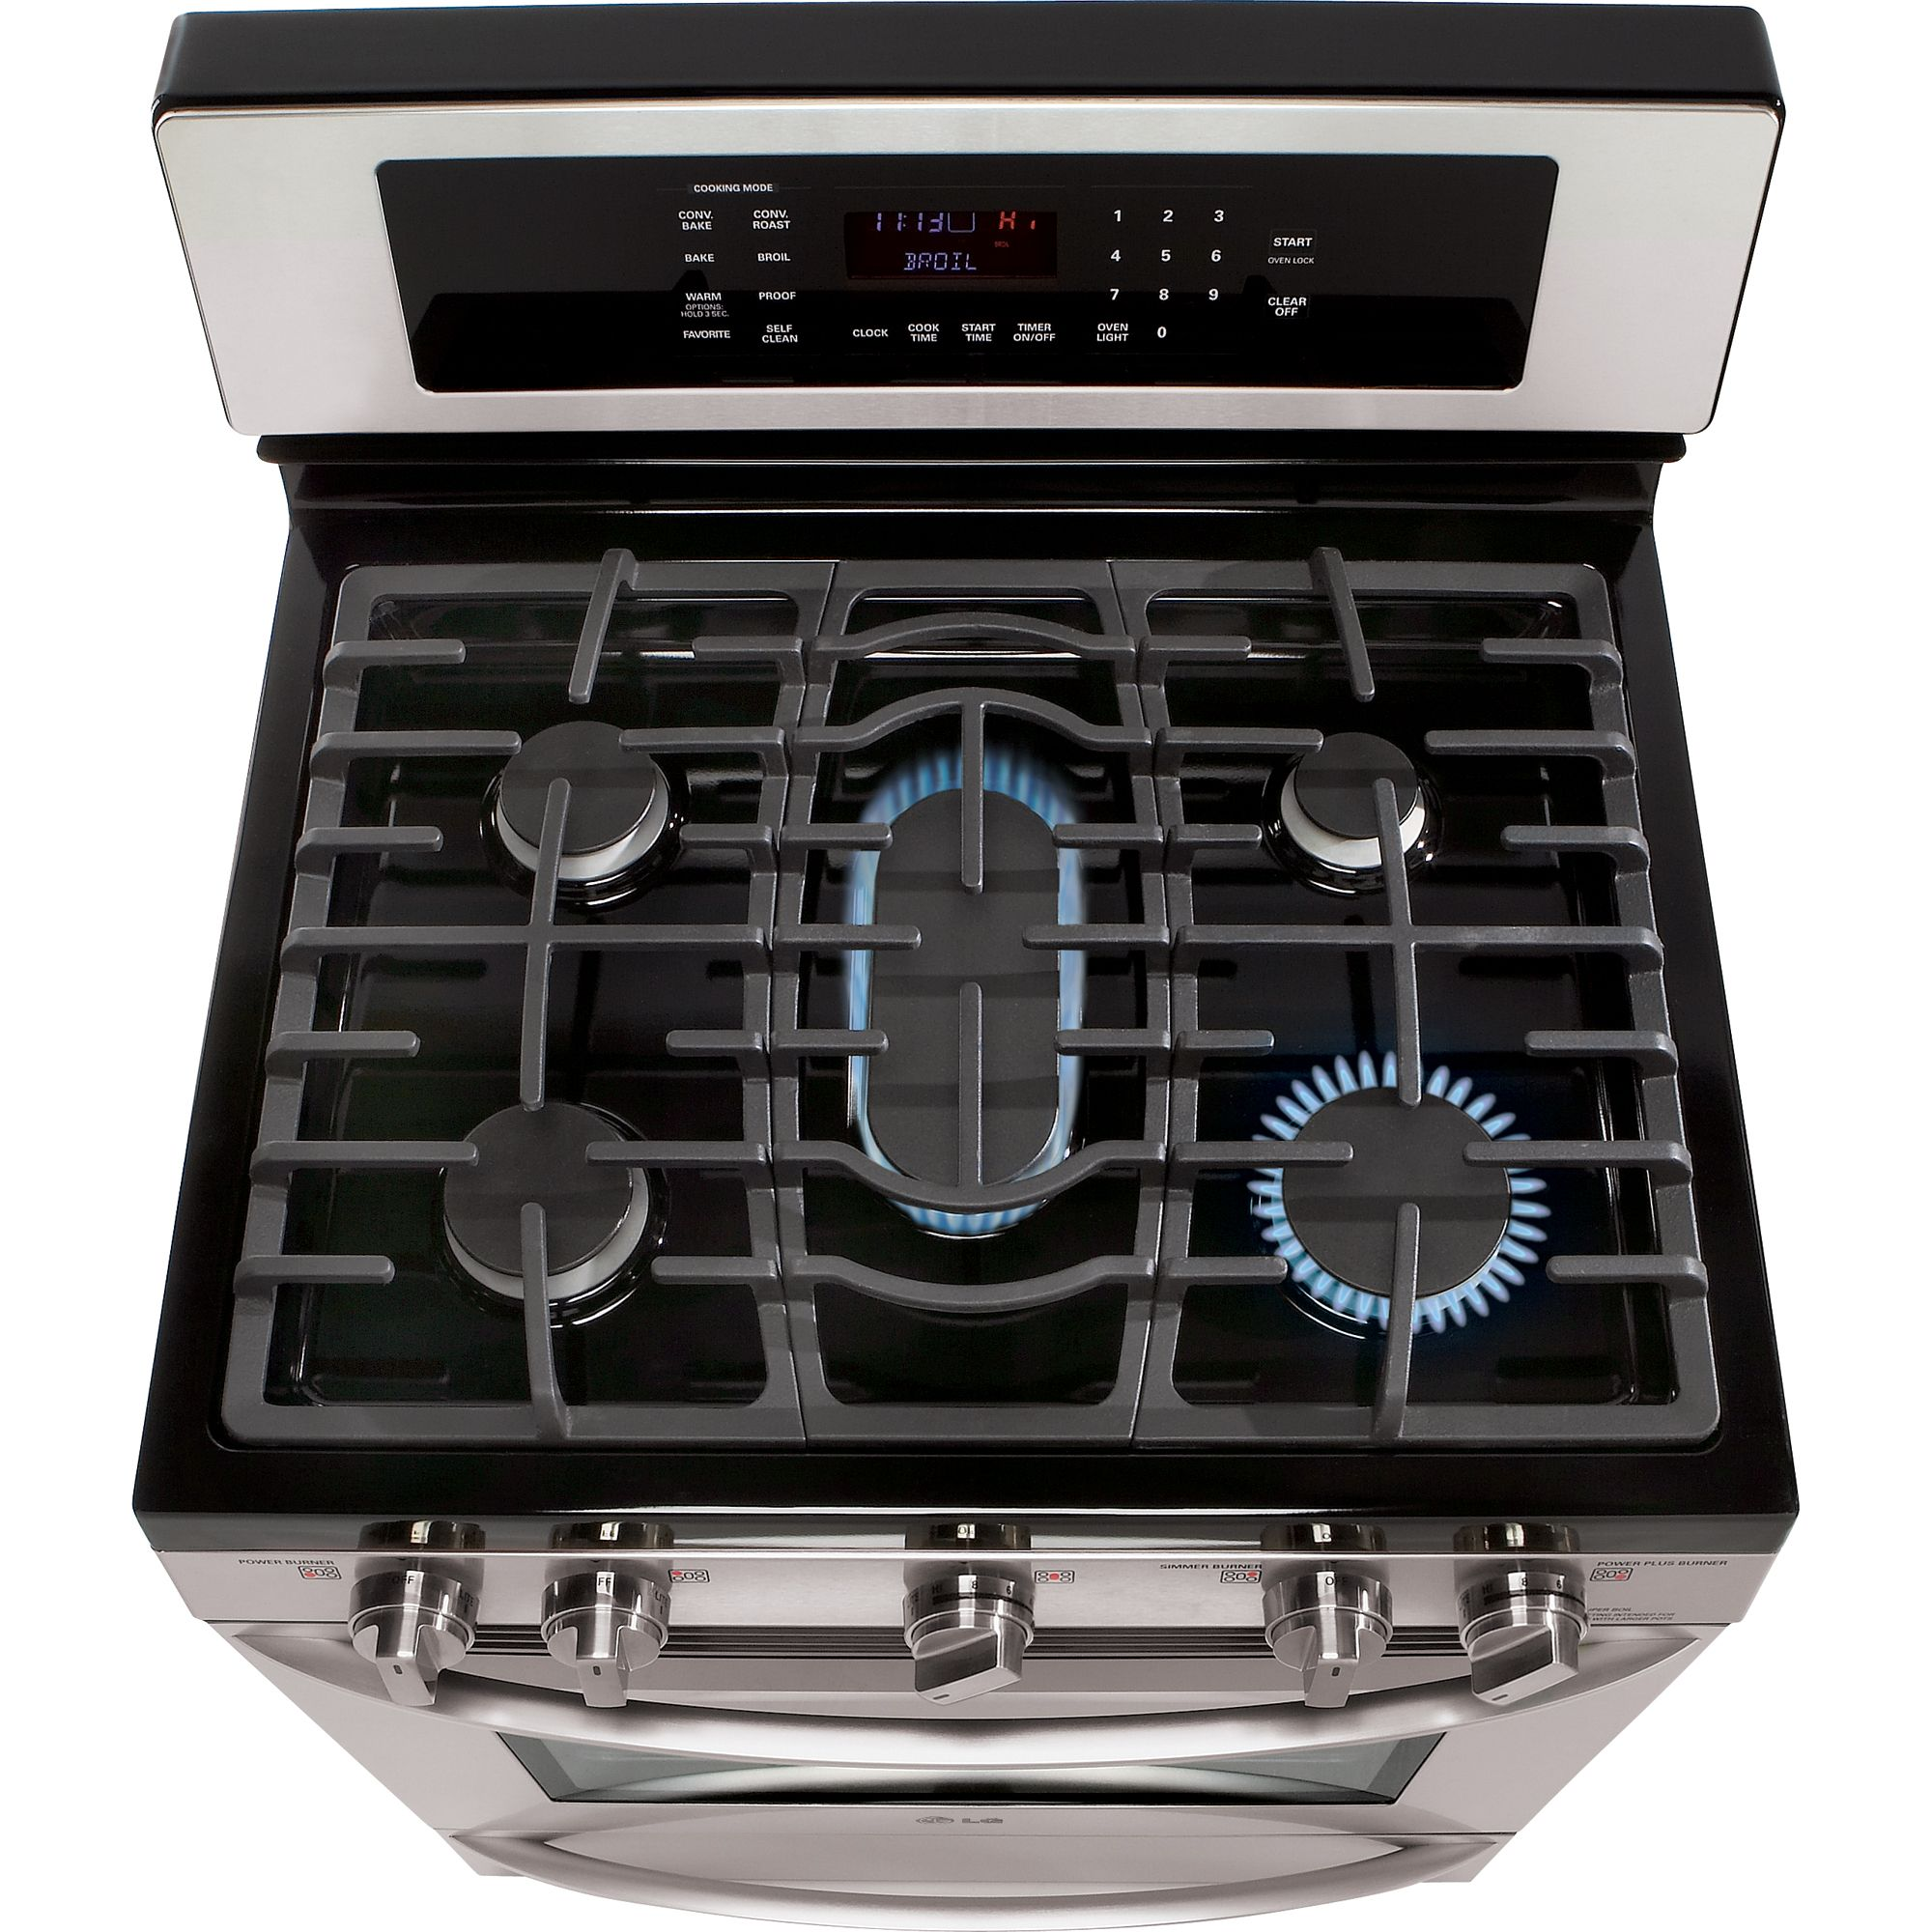 022_65443_CookTop_HO_ON-0